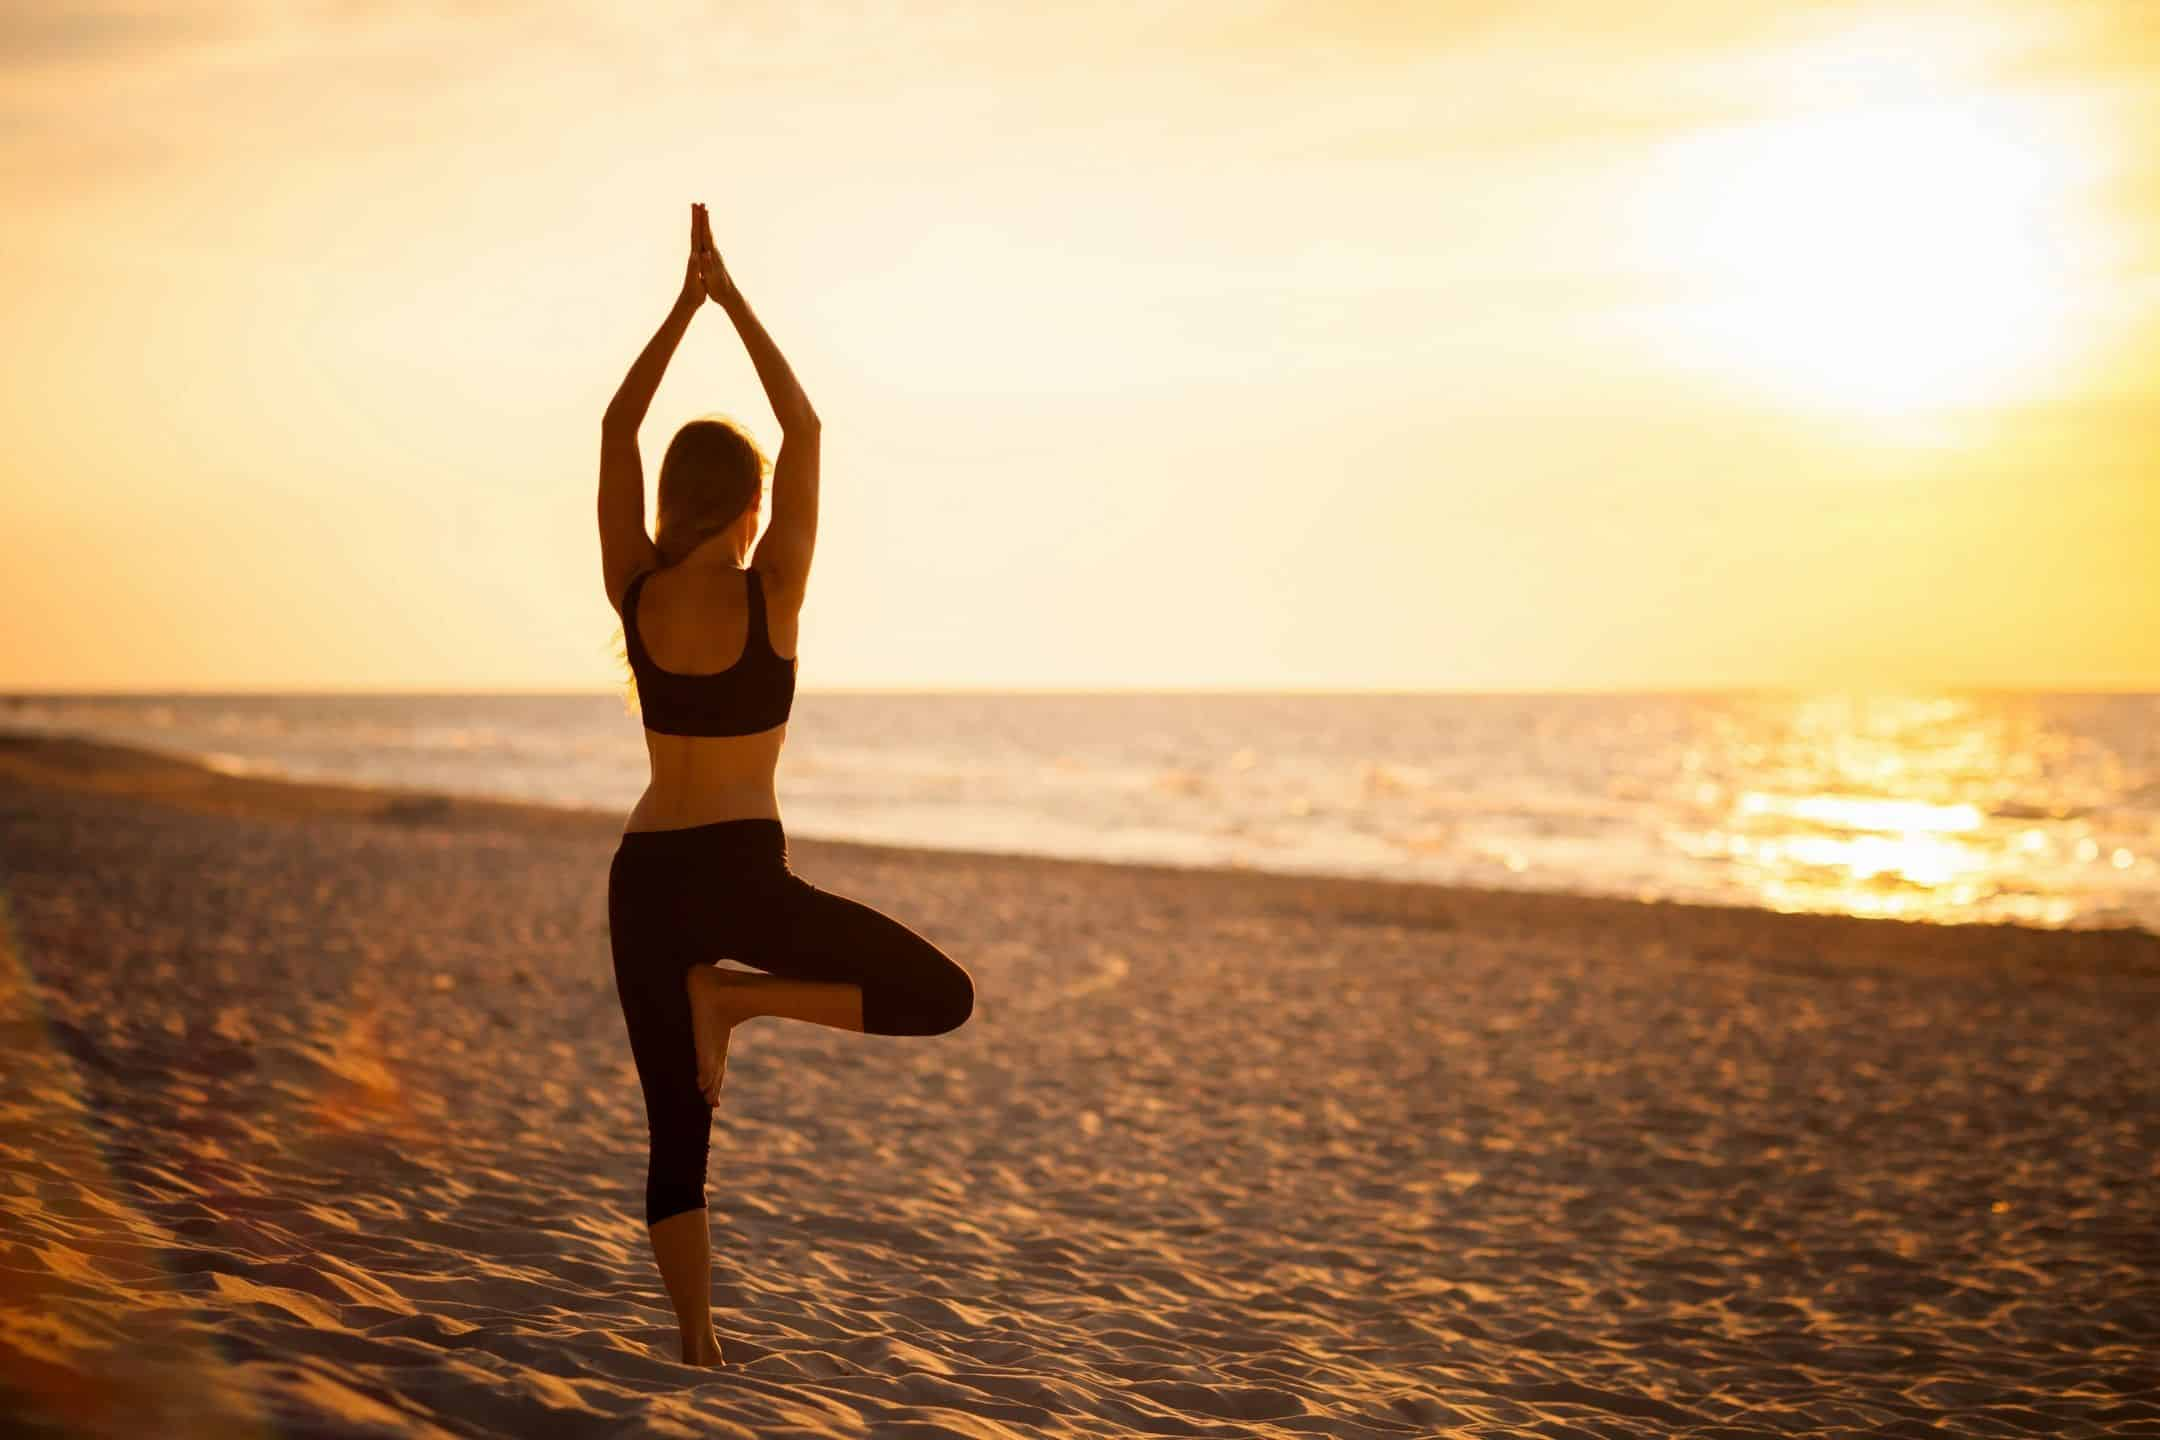 woman at beach stretching her arms above her head while standing on one leg